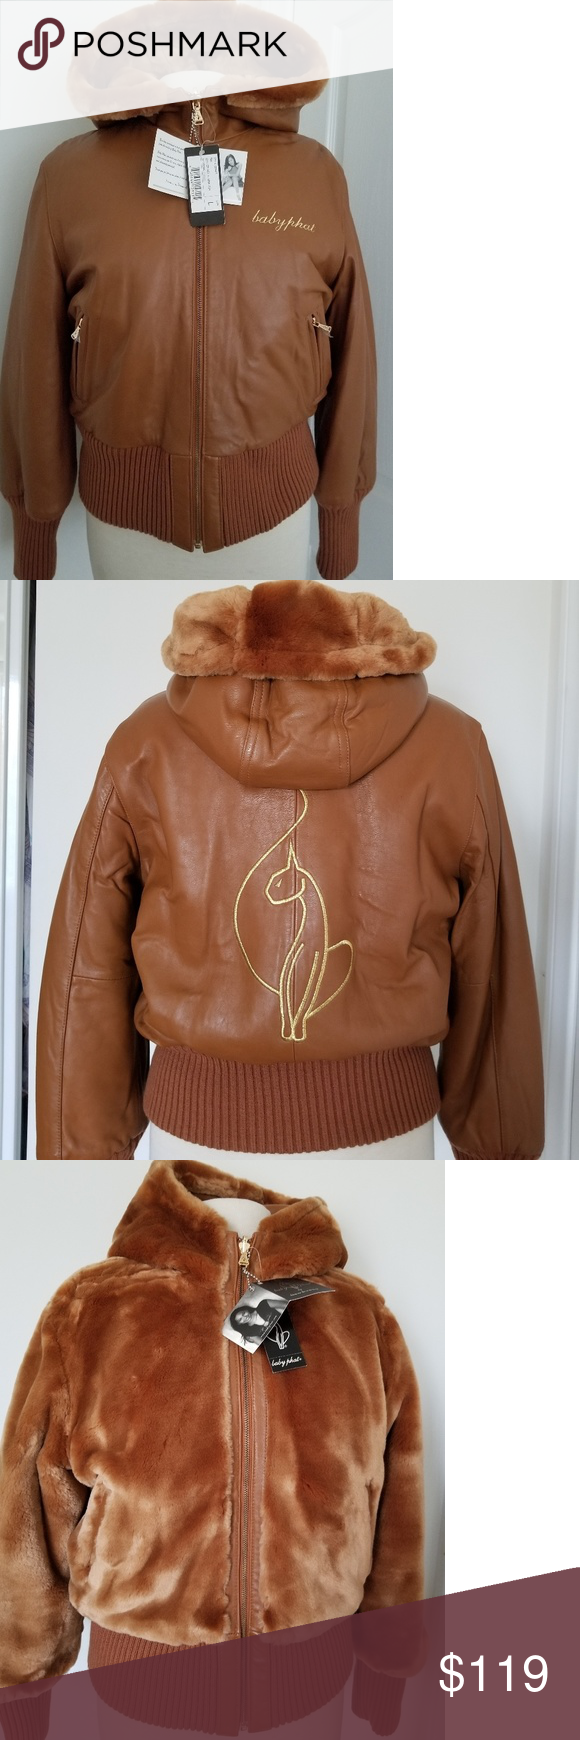 Baby Phat Reversible Brown Leather Jacket L Baby Phat